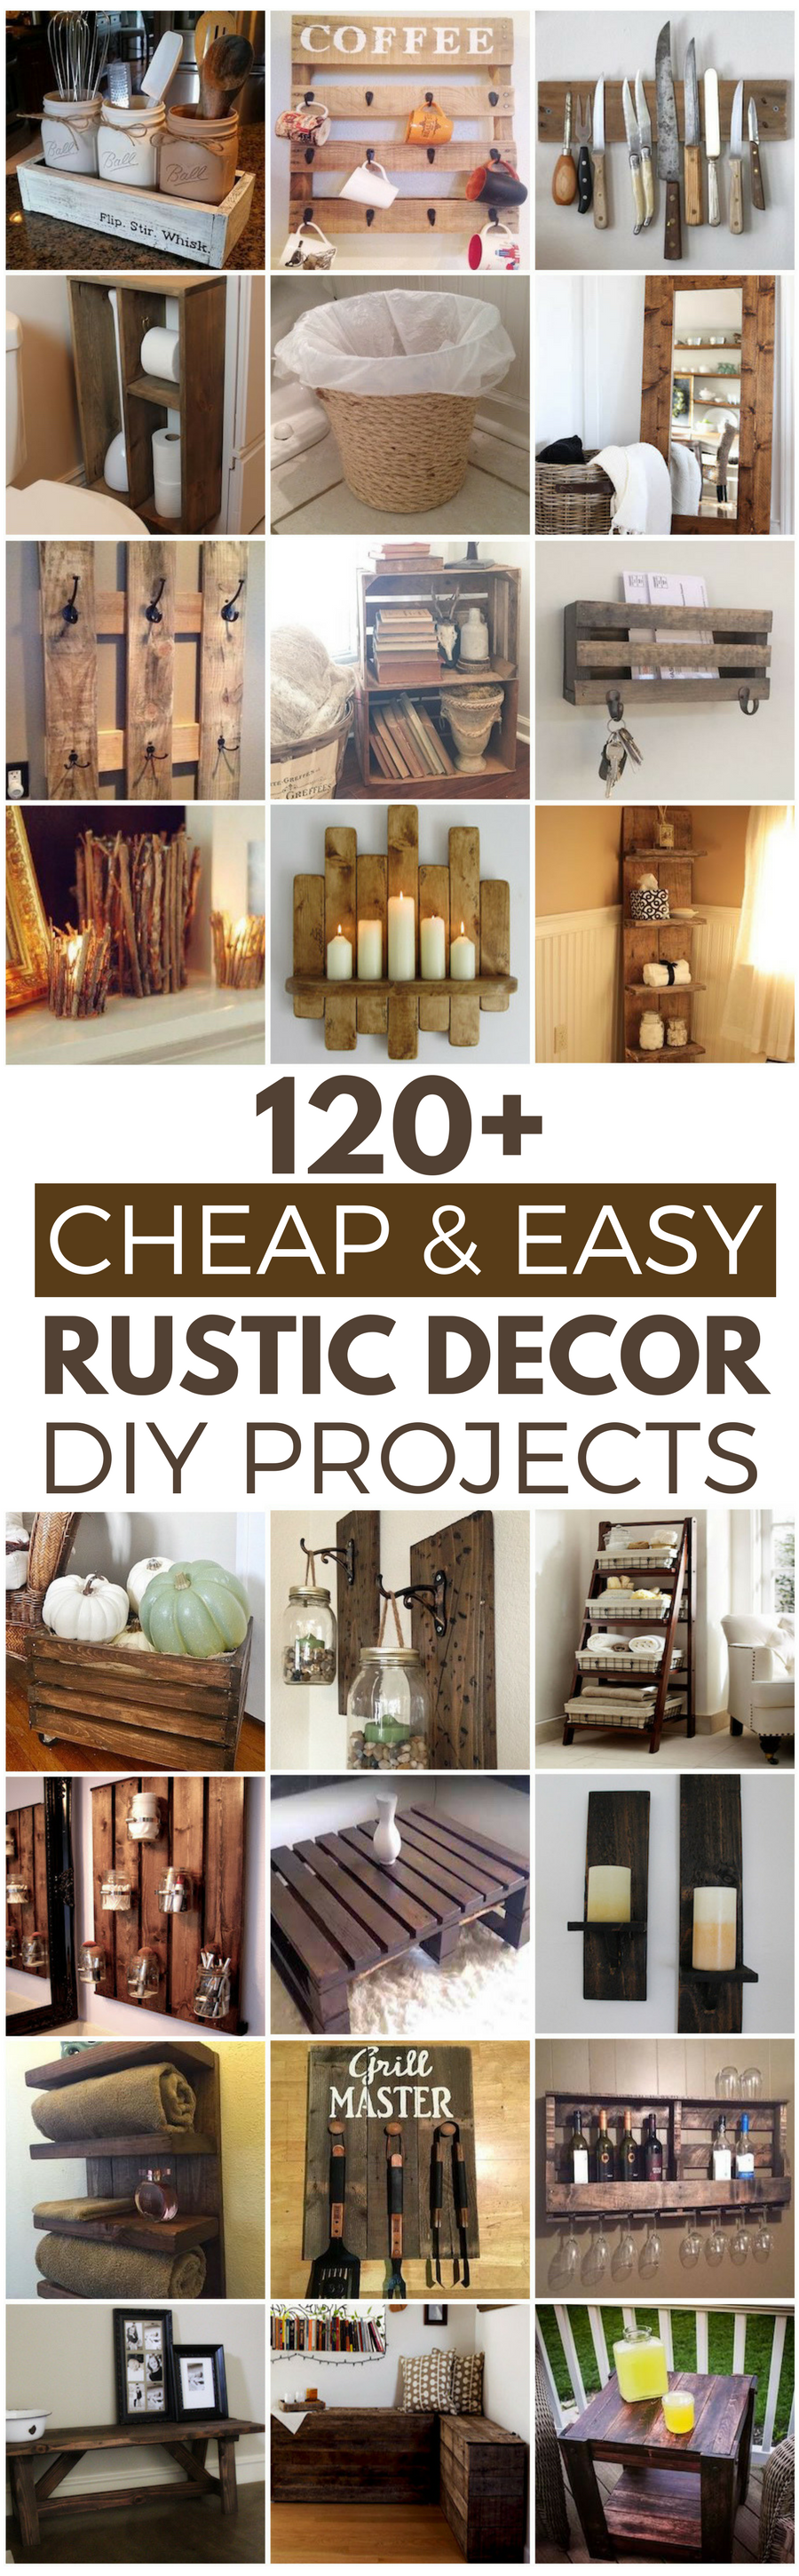 120 Cheap and Easy Rustic DIY Home